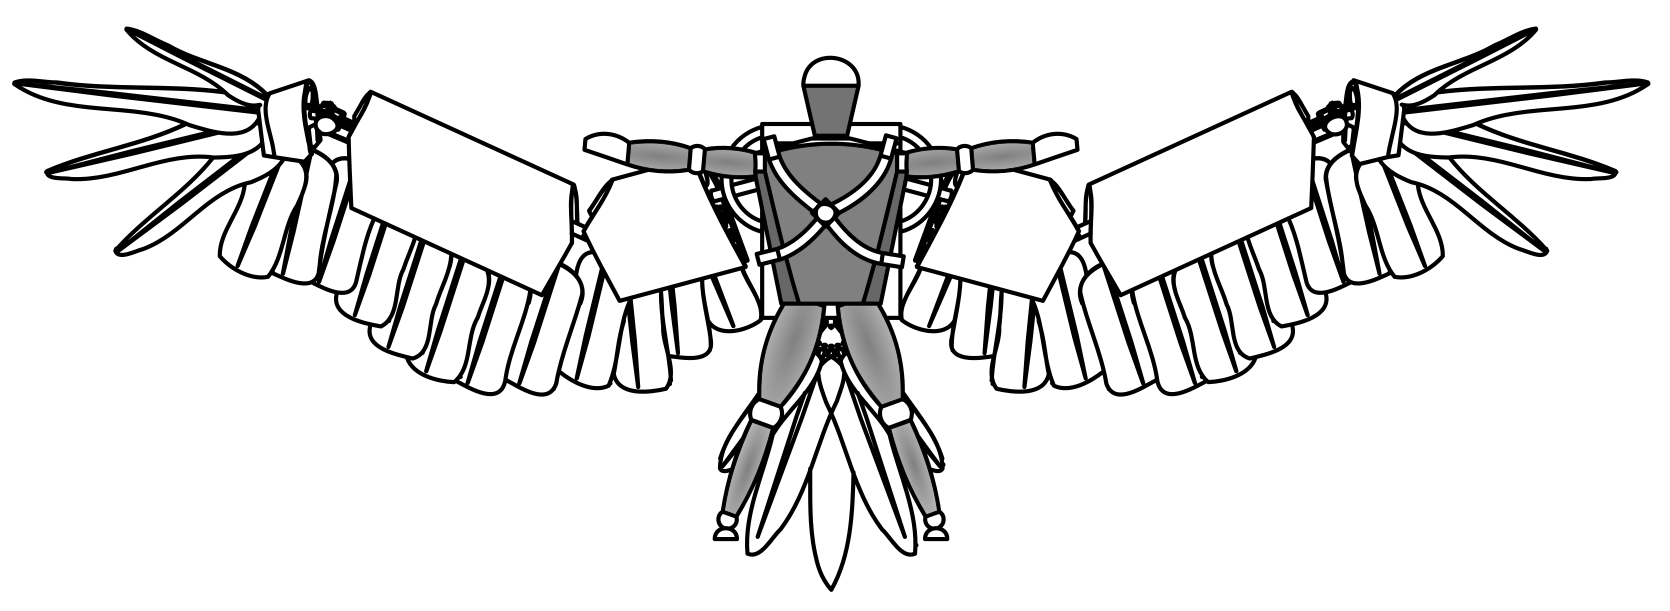 Exoskeleton With Wings